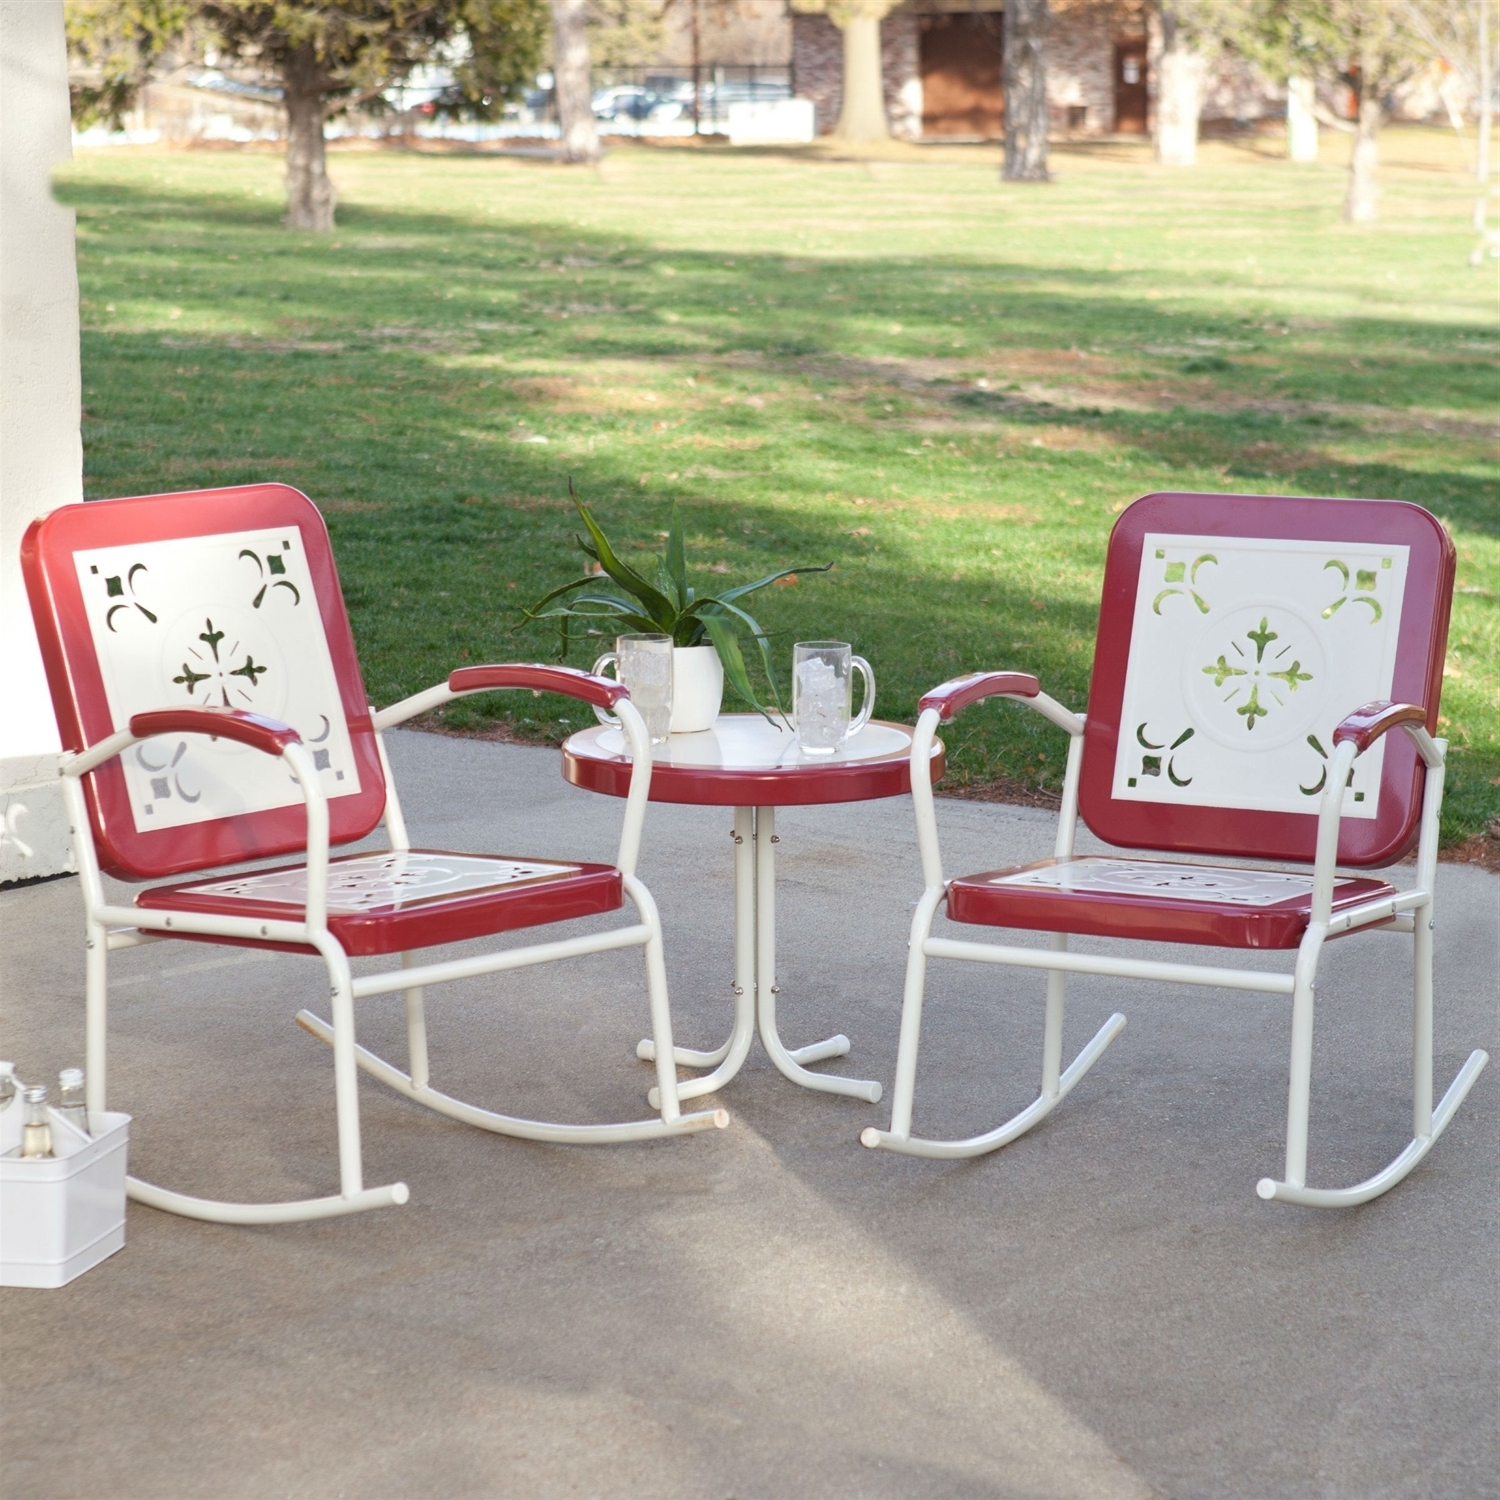 Widely Used Outside Rocking Chair Sets Pertaining To Cherry Red Retro Patio Pc Metal Rocker Rocking Chair Set Aluminum (View 6 of 20)